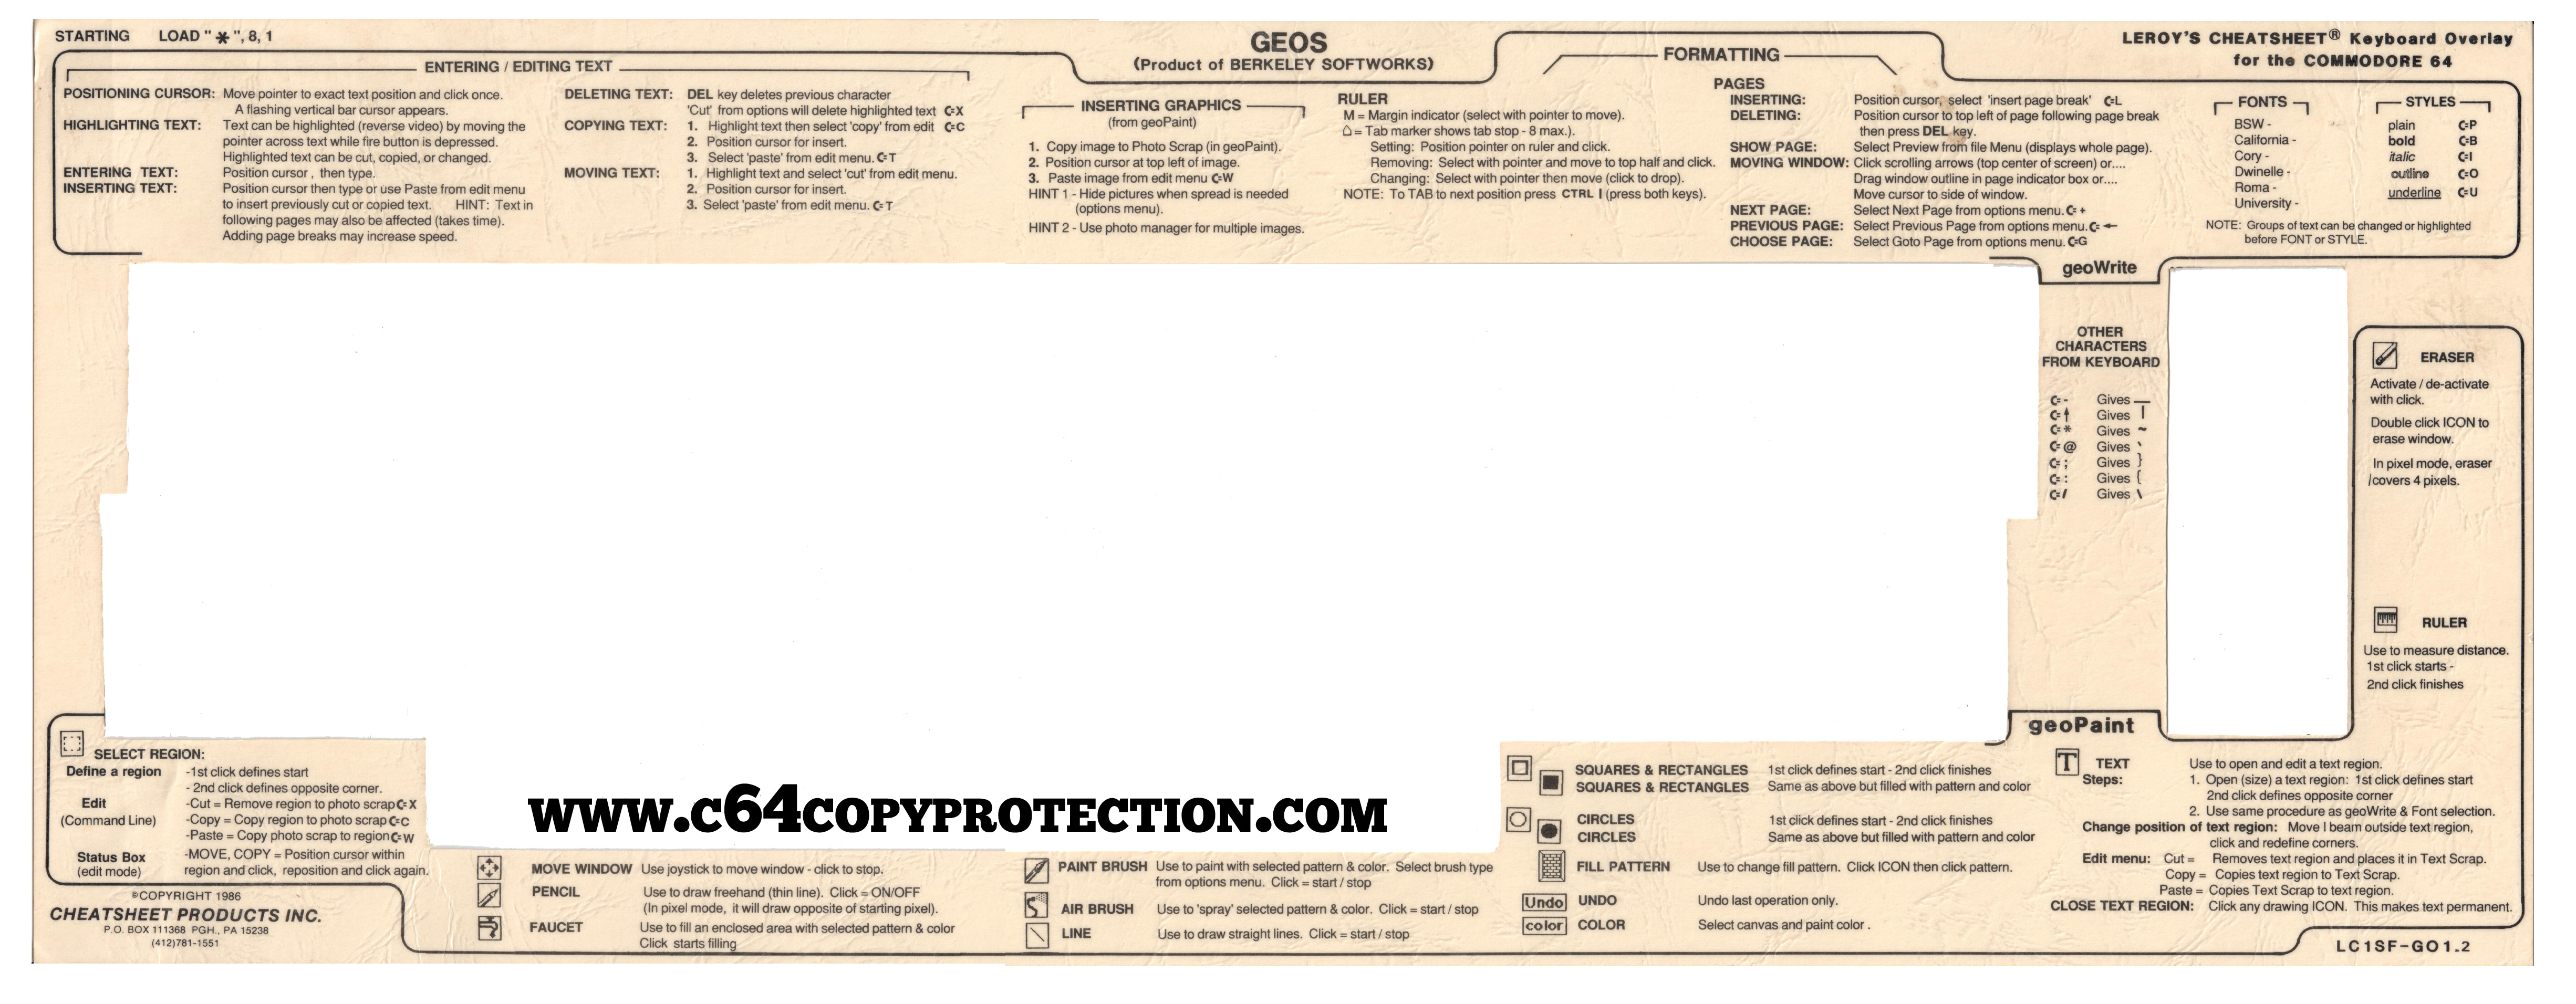 C64 Copy Protection - Documenting the History of the